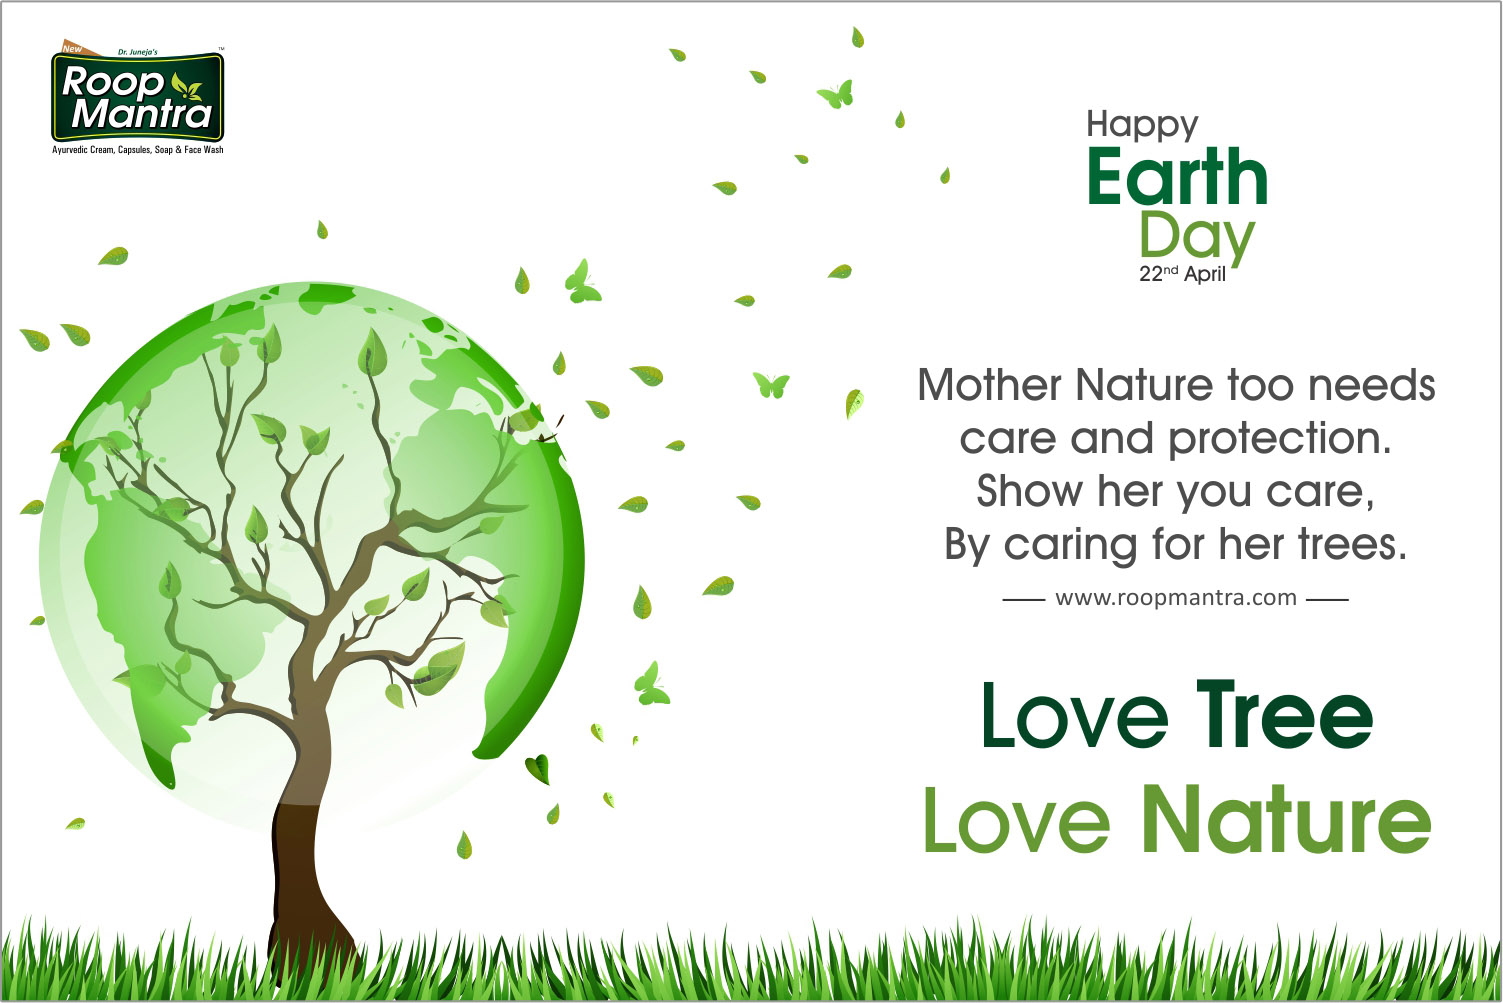 22 April 2018, Happy Earth Day, National International Day, Roop Mantra